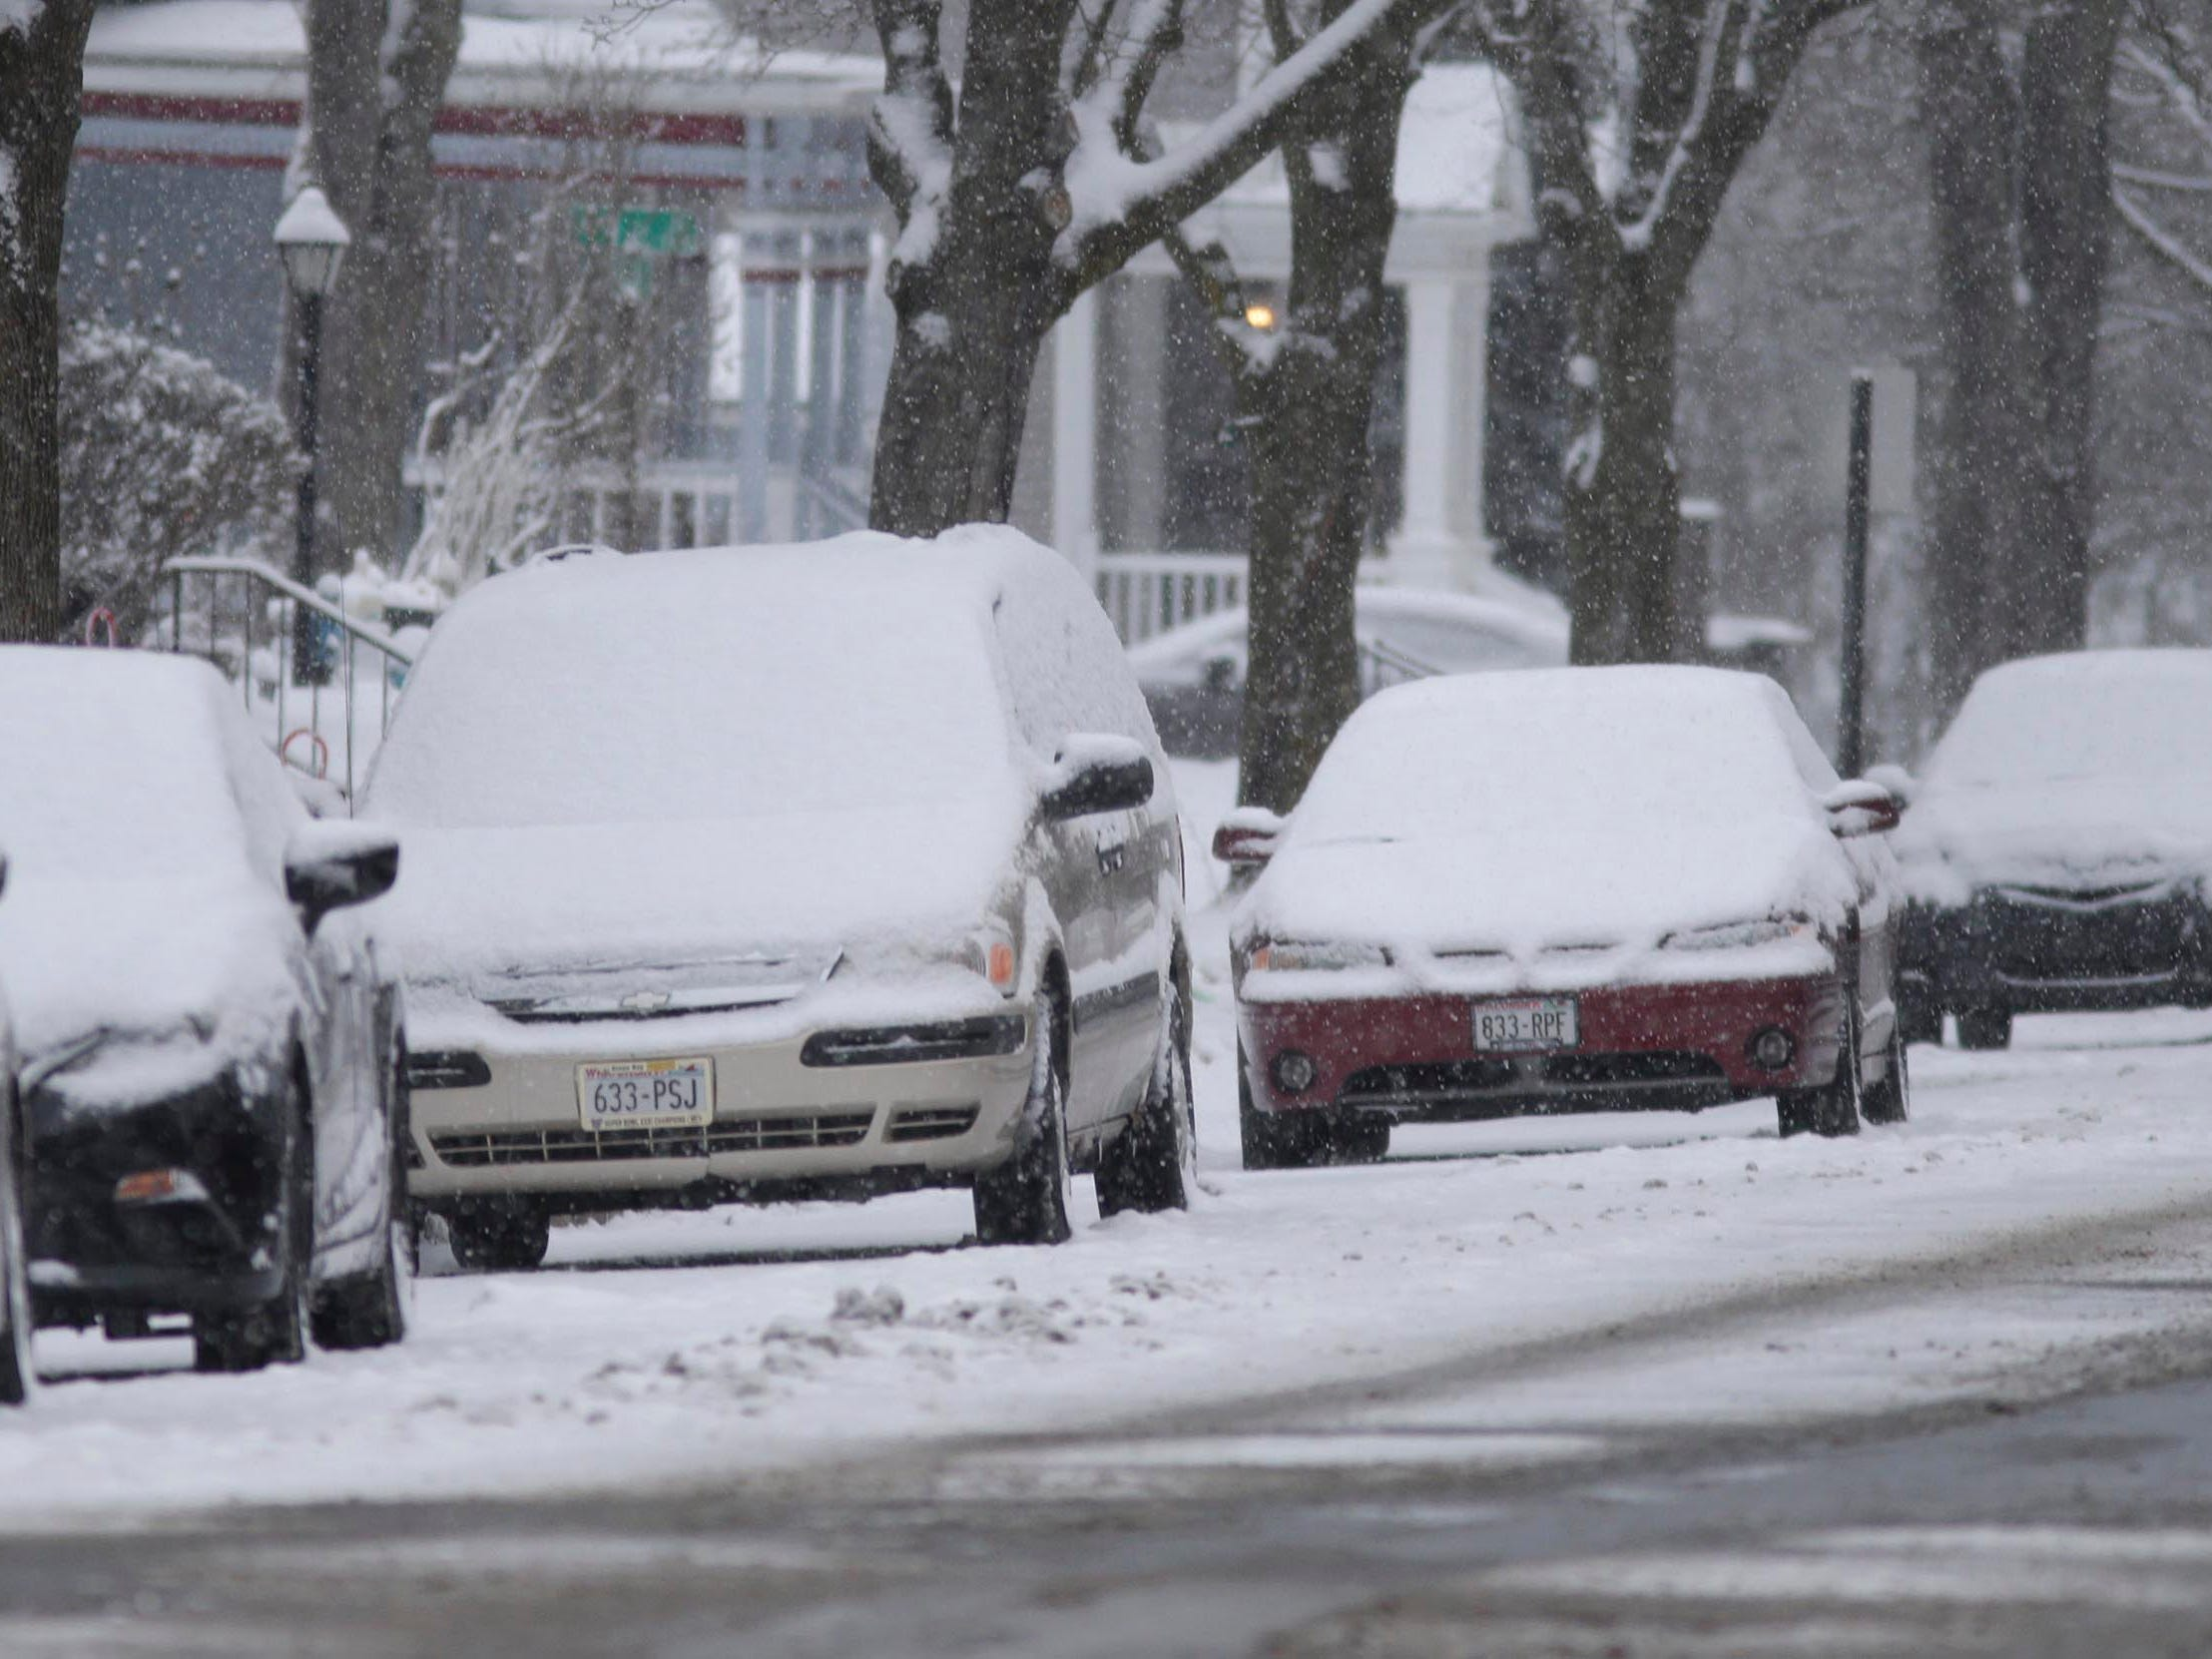 Fresh snow covers windshields on parked cars near Michigan Avenue, Wednesday, January 2, 2019, in Sheboygan, Wis.